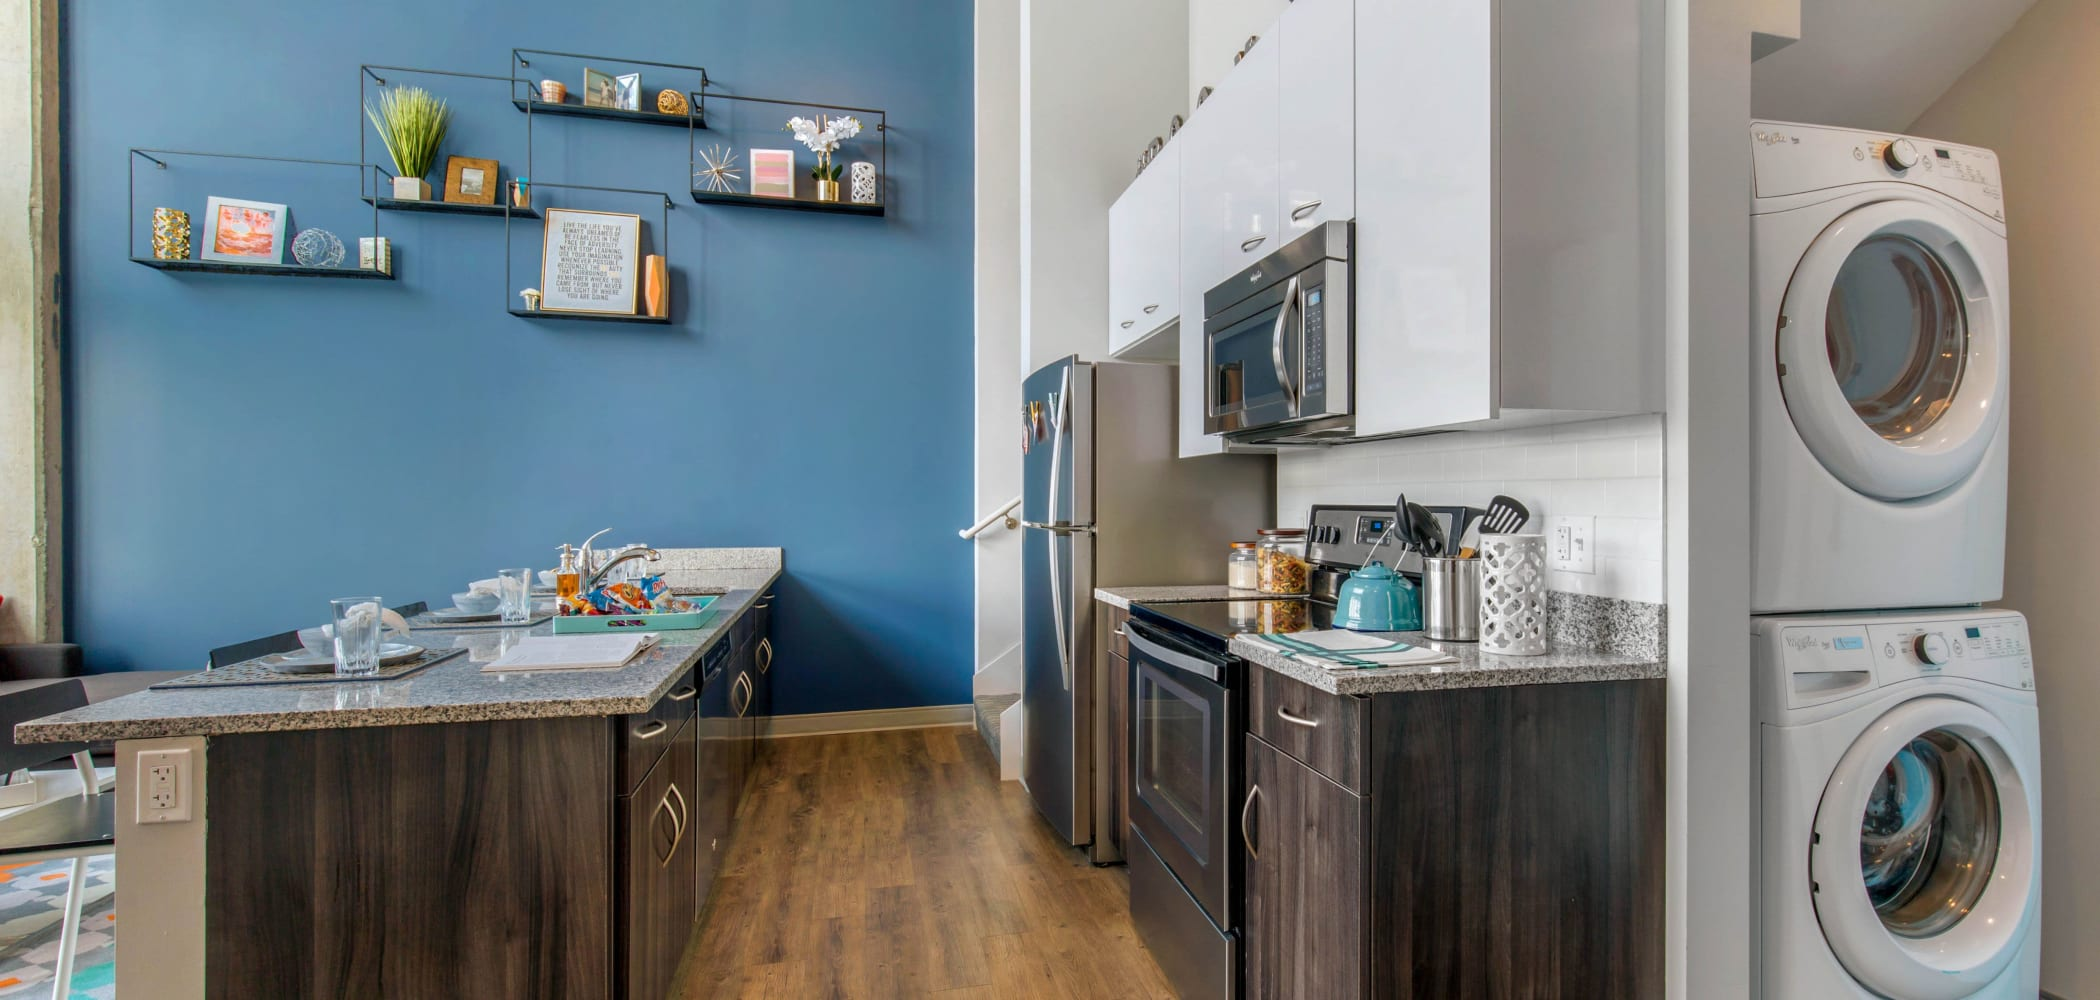 Fully equipped kitchen and in-unit washer and dryer at HERE Champaign in Champaign, Illinois